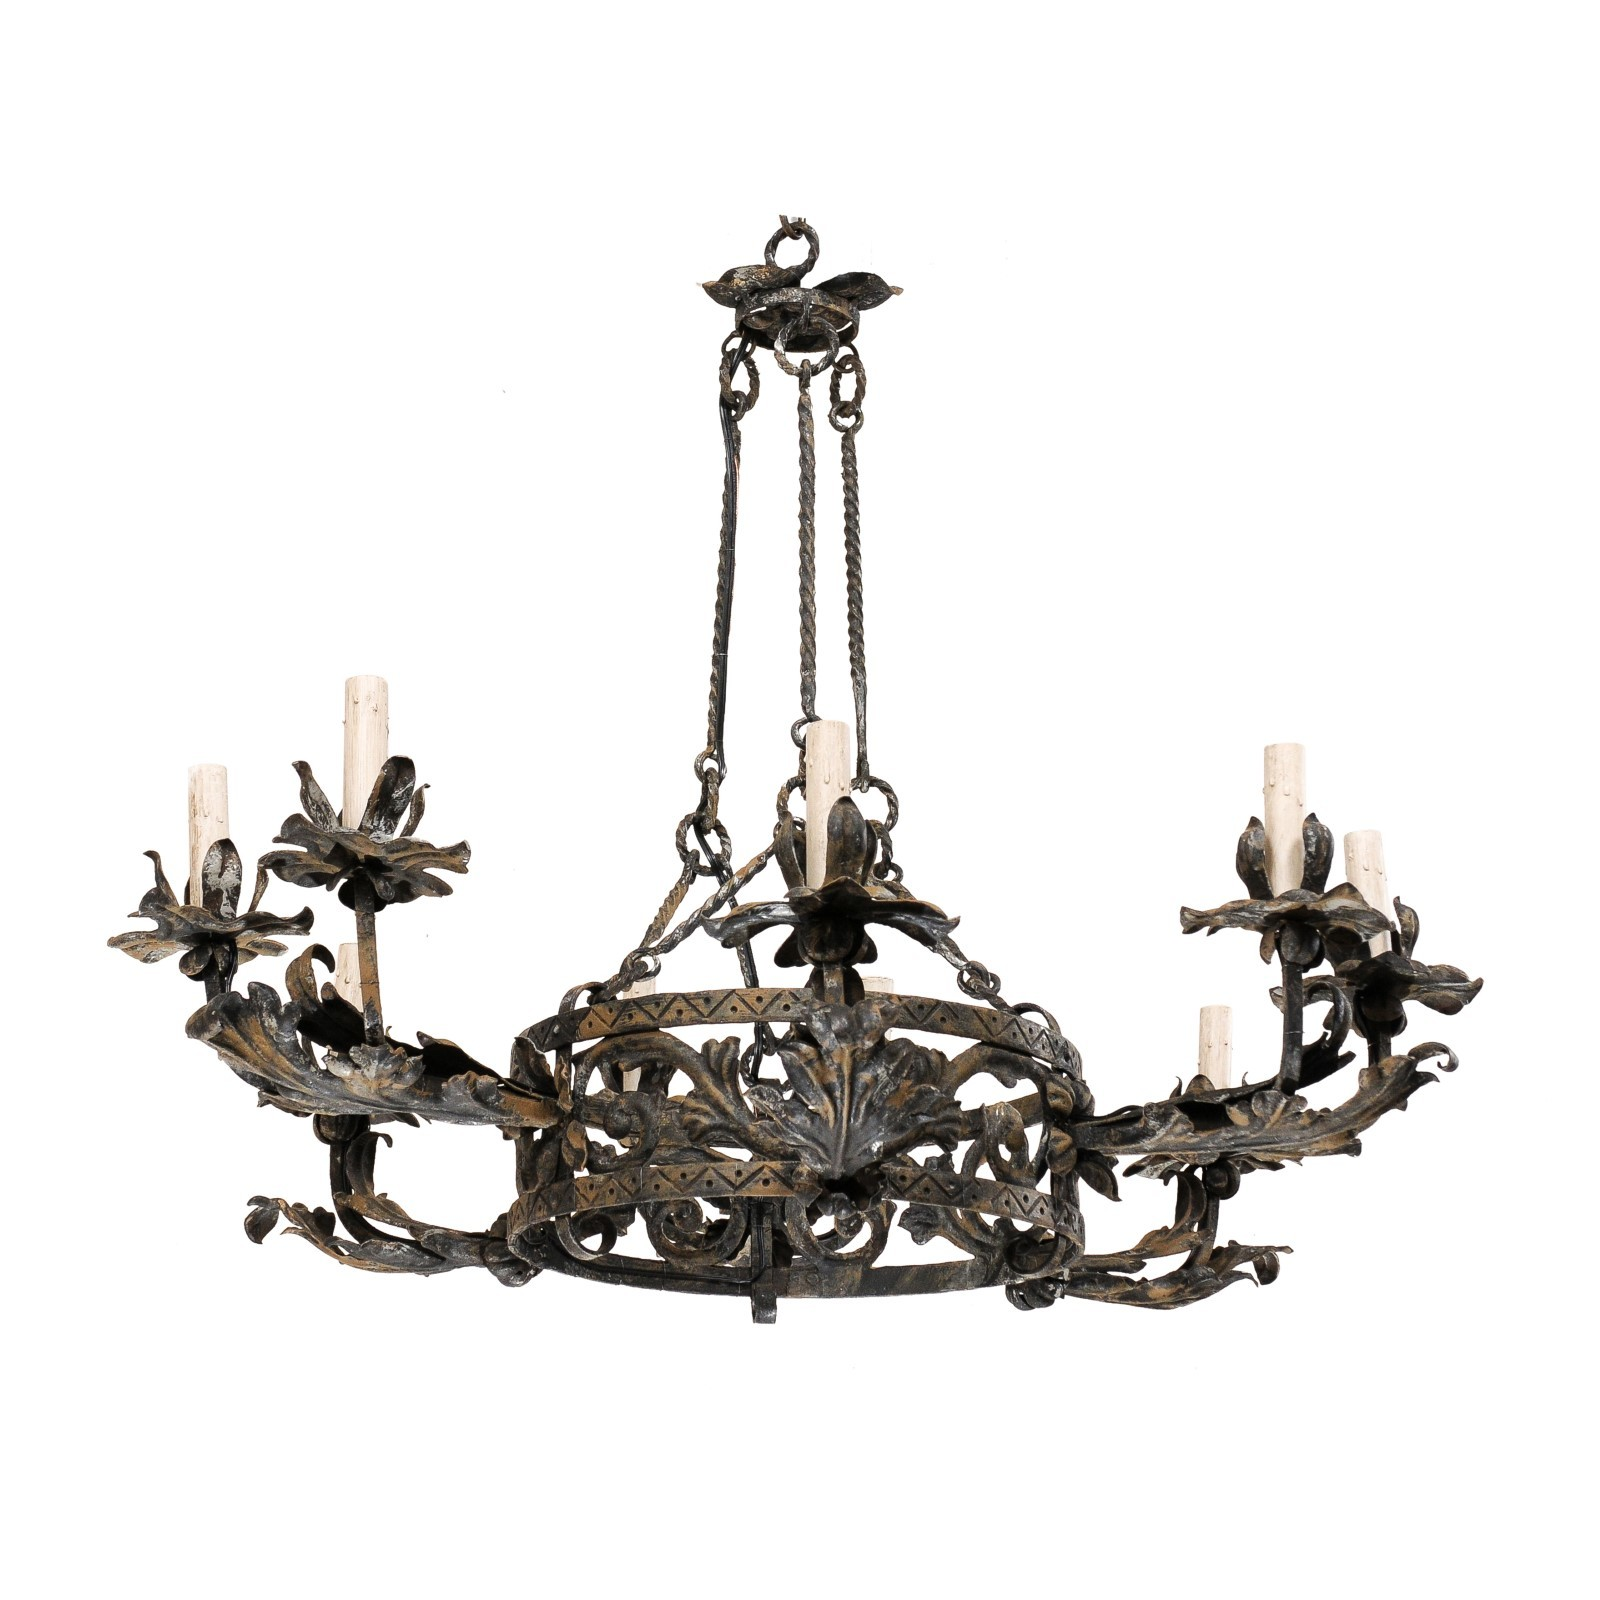 Foliage Motif Ringed Chandelier, Italy